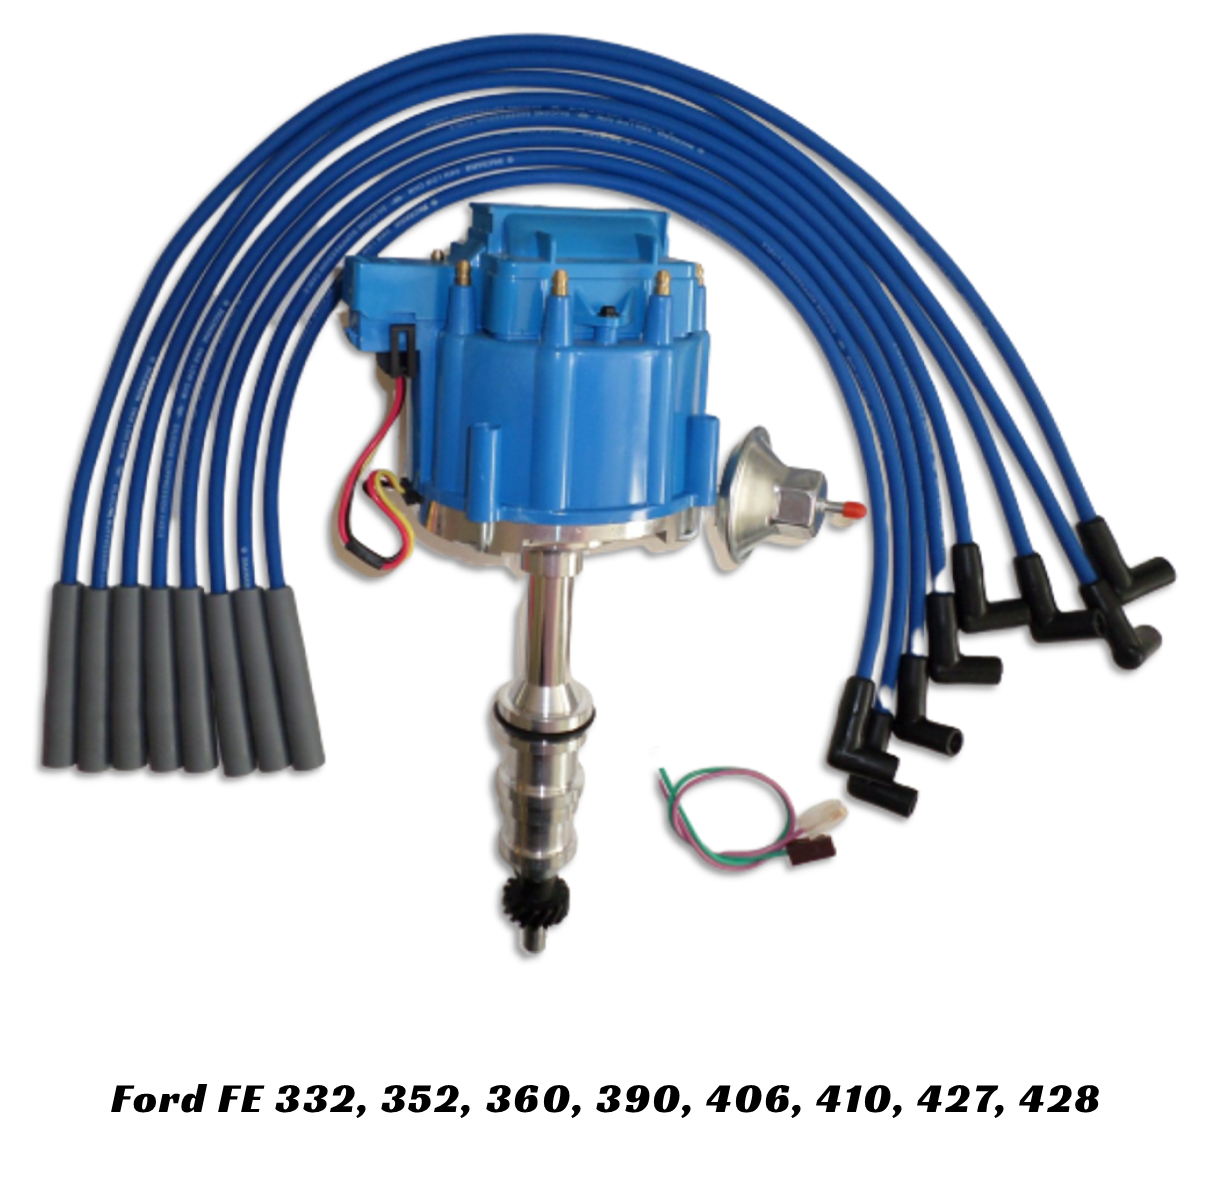 ford fe hei distributor with made in the usa spark plug wires blue  swapmeetparts